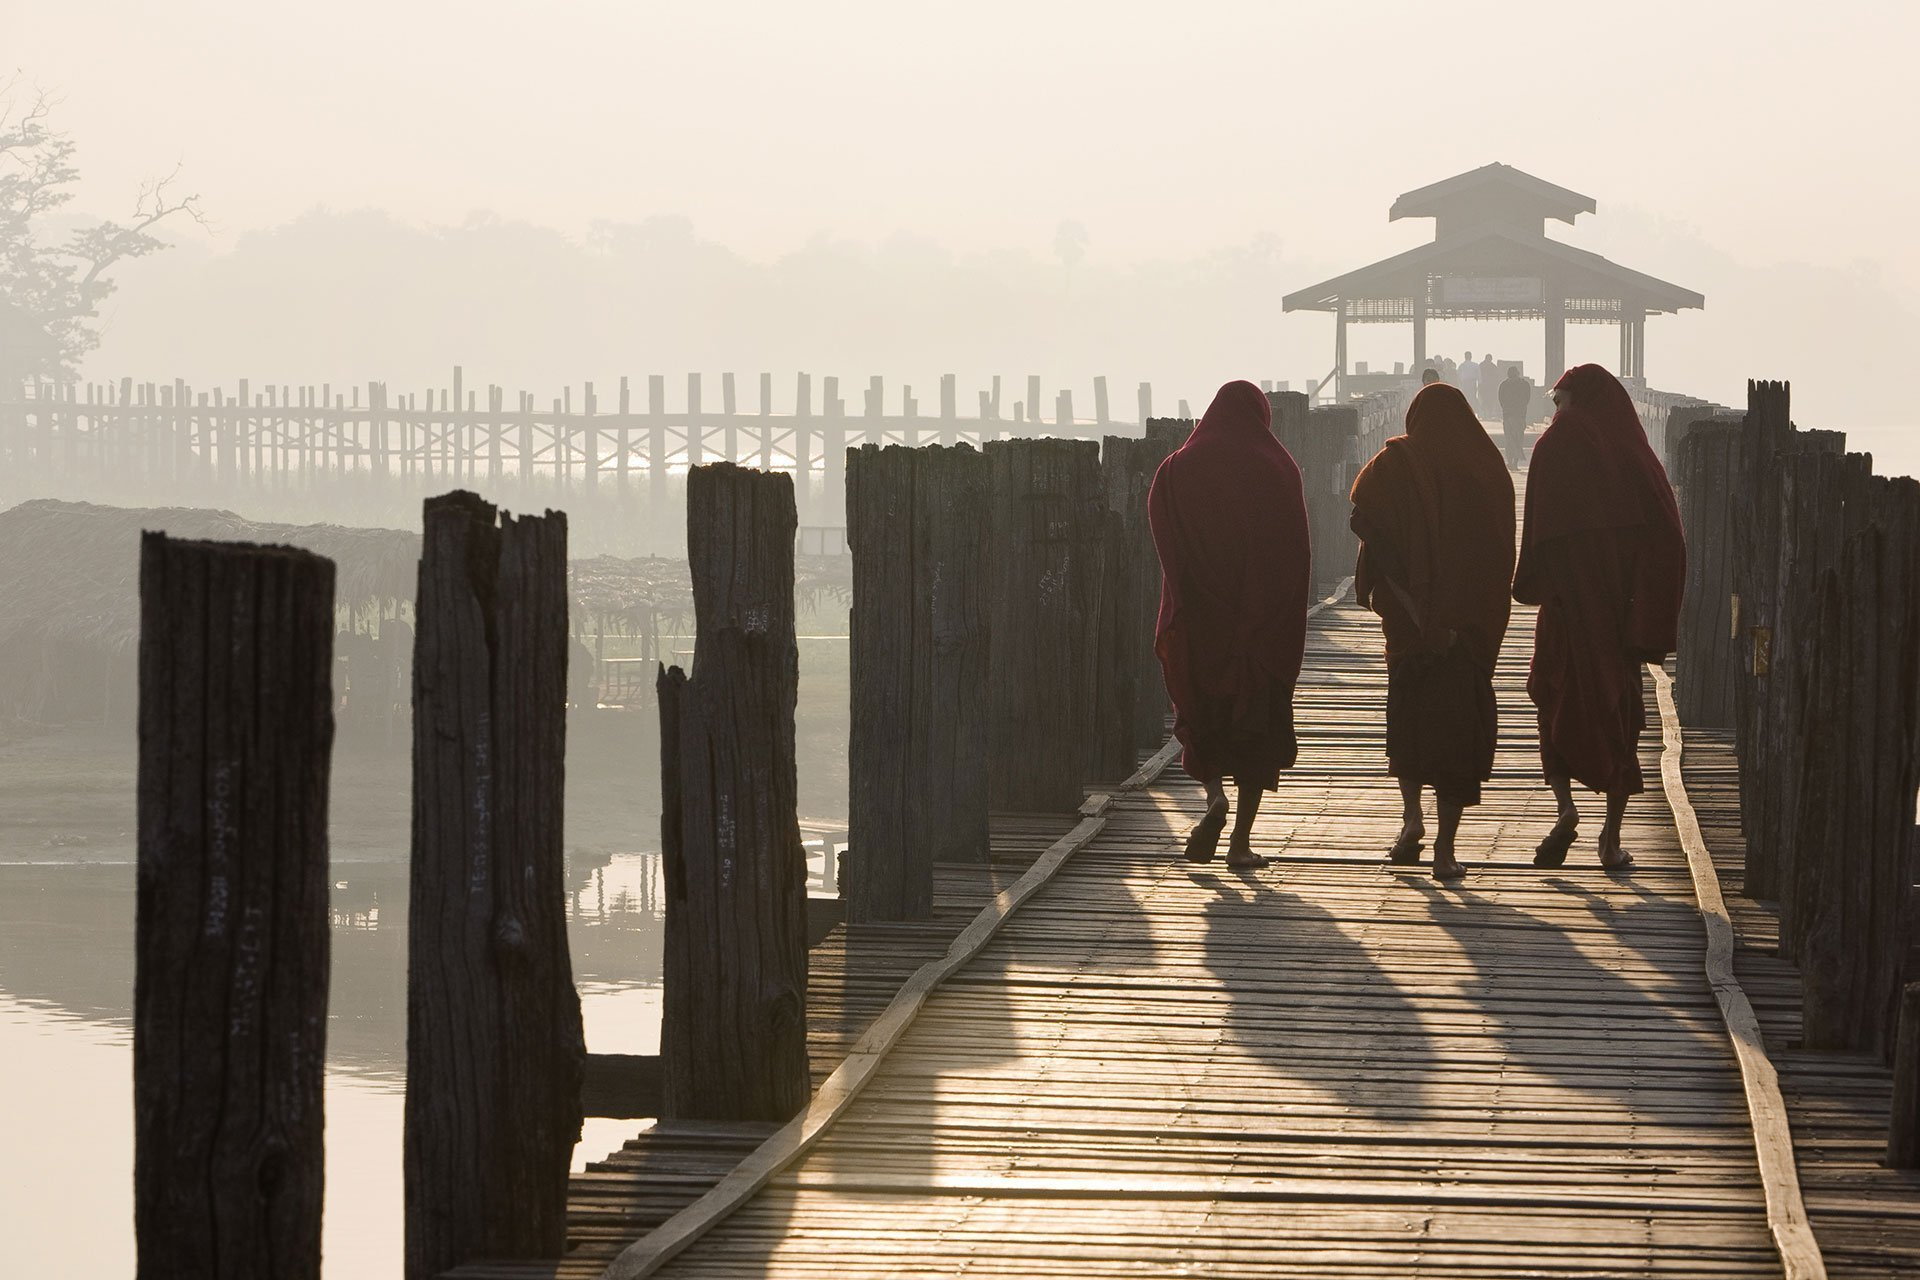 Monks on the Ubein Bridge near Mandalay, Myanmar, 2012 - Photography by Hans Kemp